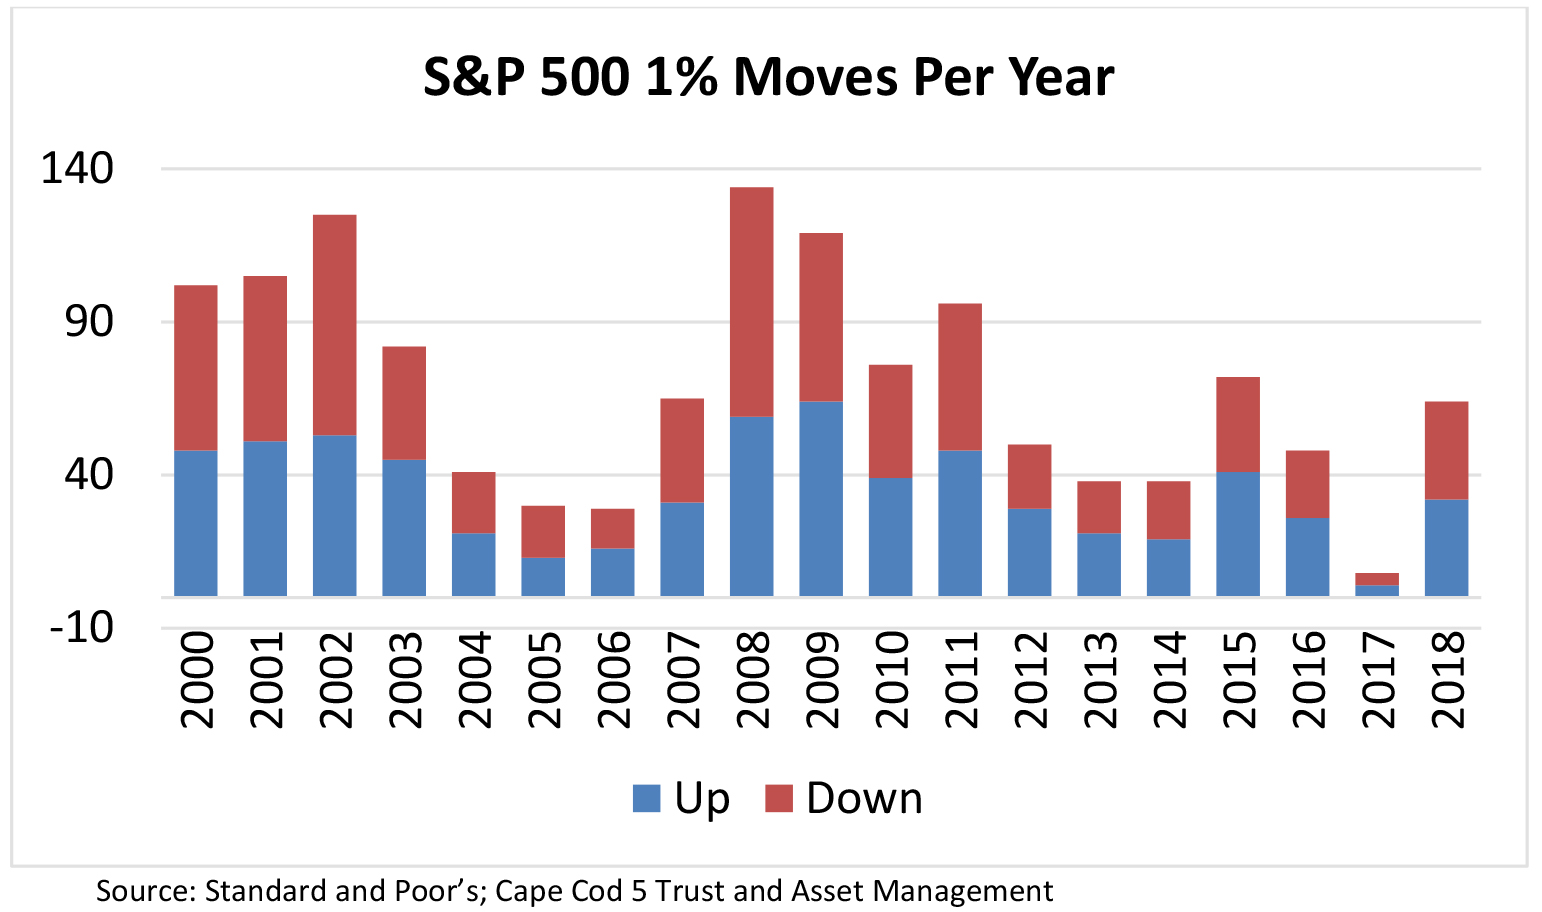 S & P 500 1% Moves Per Year